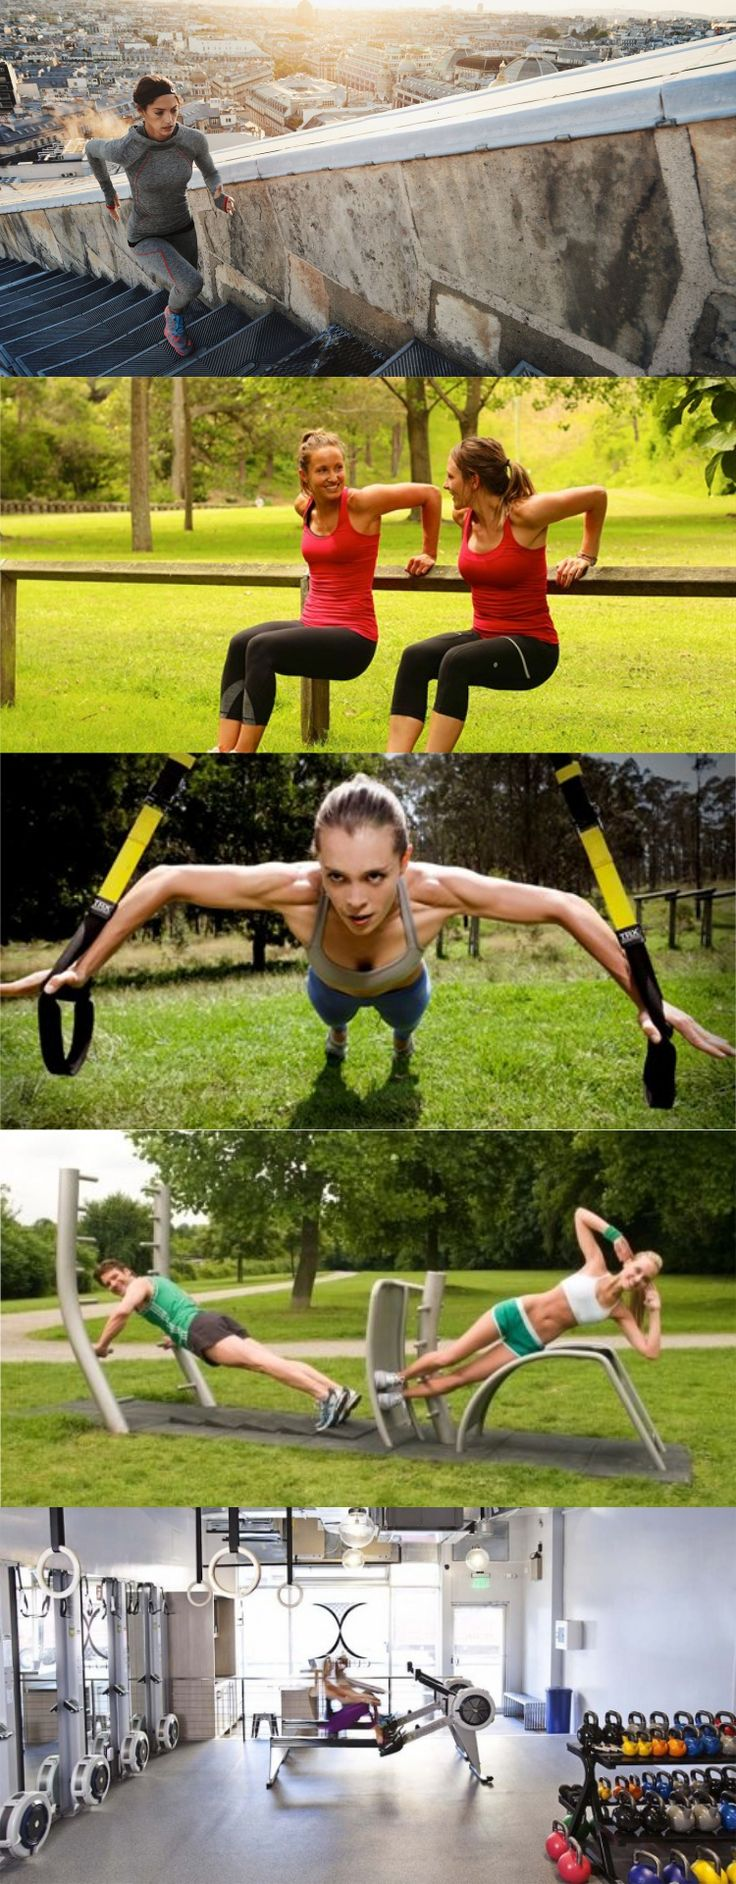 123 teach me tank game - Amazing Outdoor Fitness Trends This Year